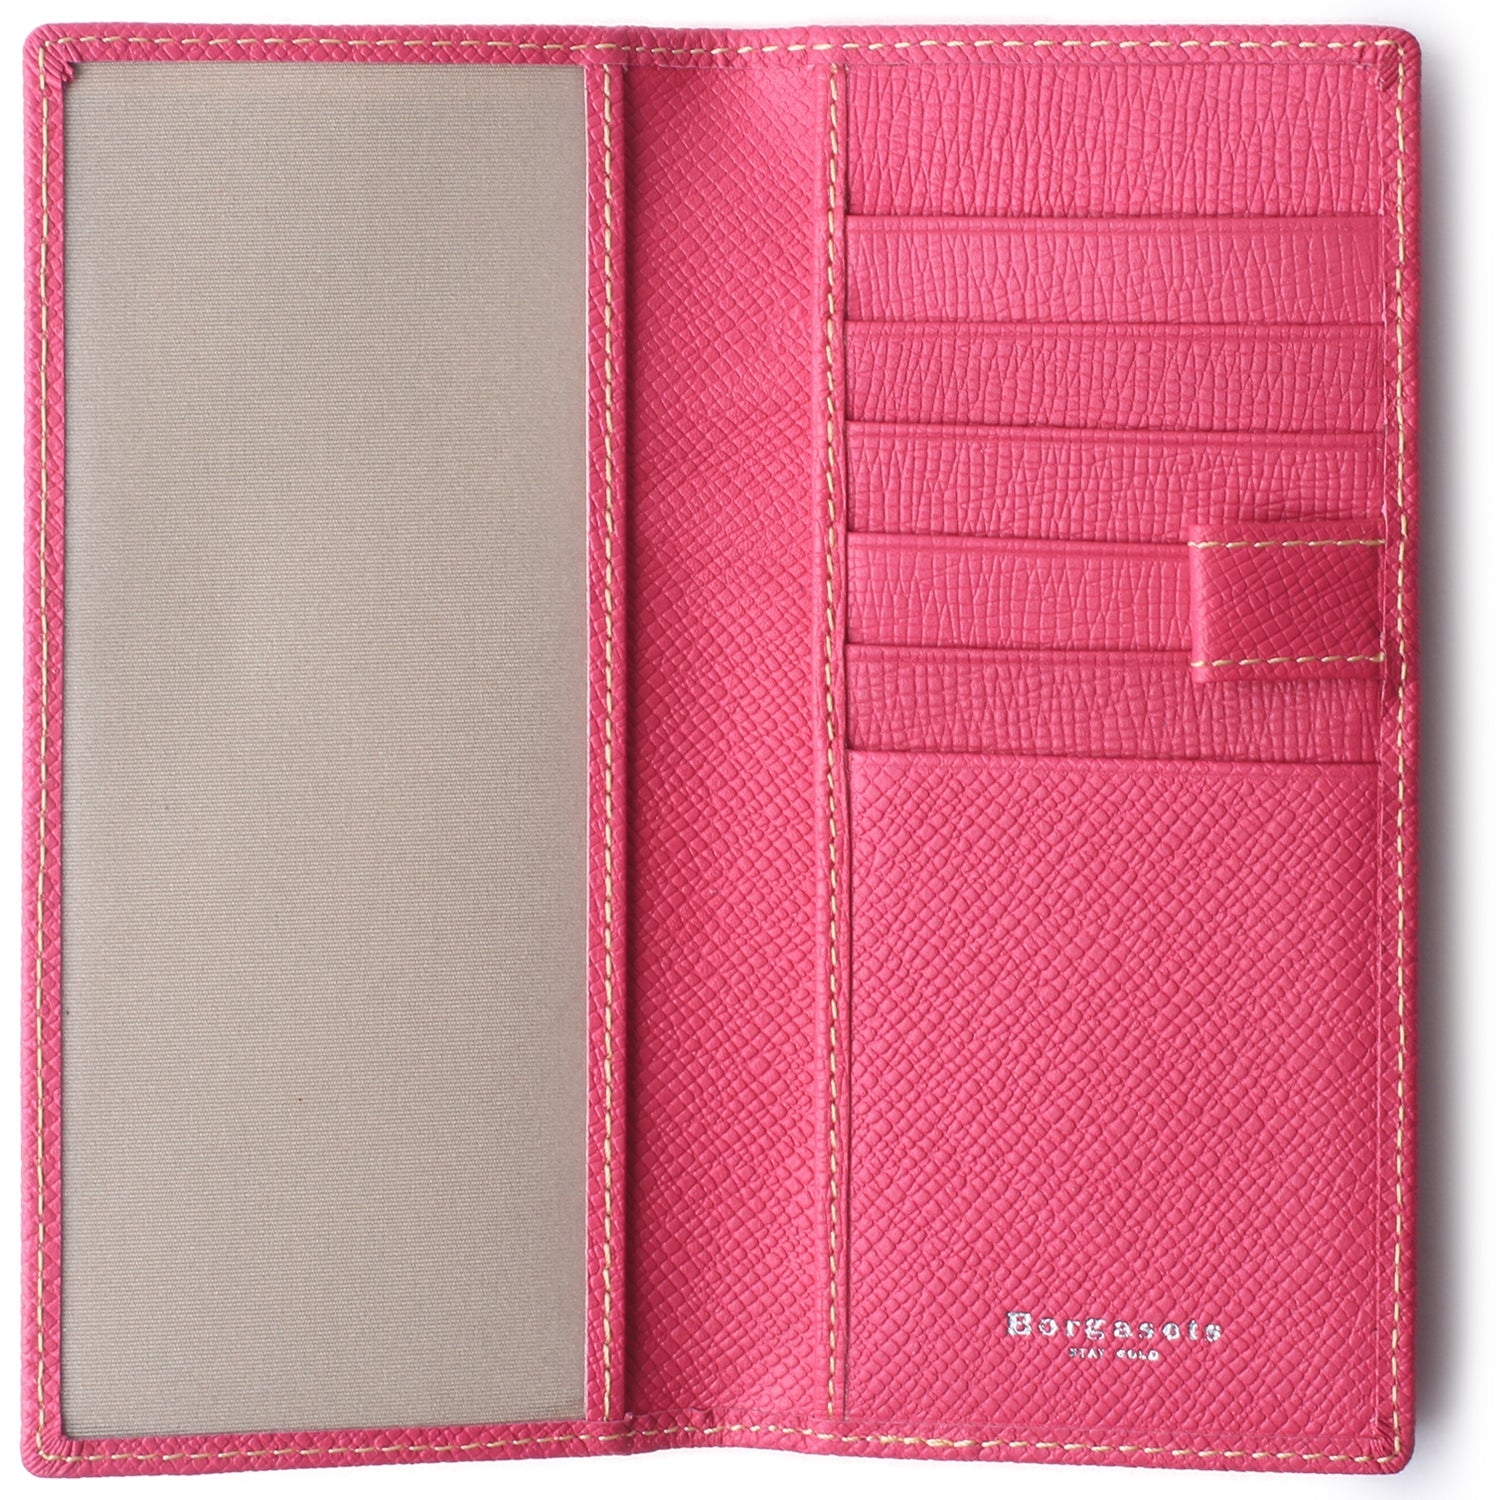 Leather Checkbook Cover For Men Women Checkbook Covers with Card Holder Wallet Pink - Borgasets